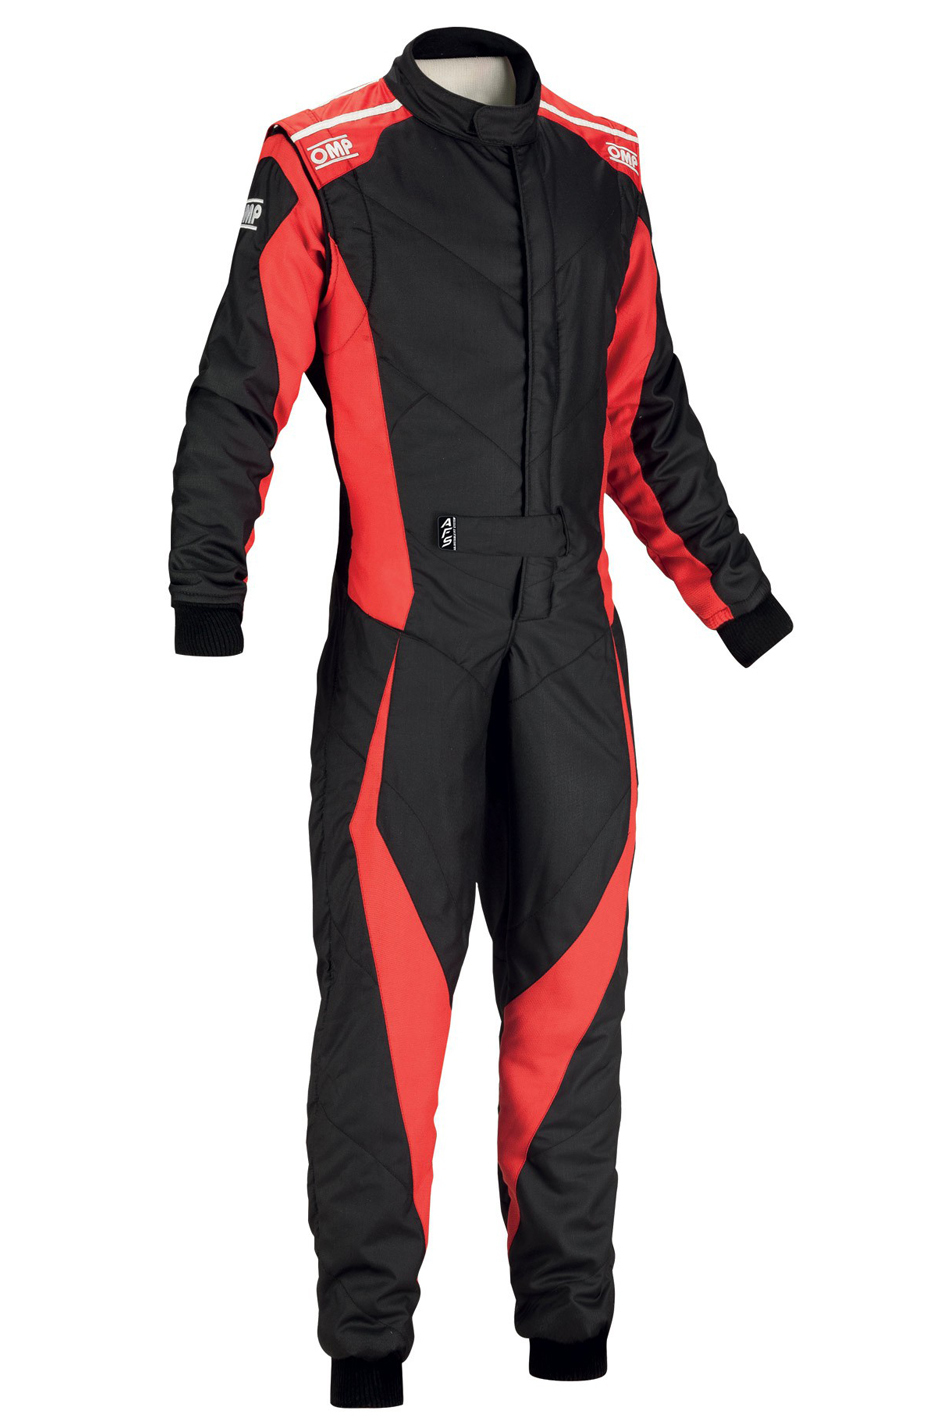 OMP Racing IA0185907358 Suit, Tecnica Evo, Driving, 1 Piece, SFI 3.2A/5, FIA Approved, Double Layer, Fire Retardant Fabric, Black / Red, Size 58, Large / X-Large, Each